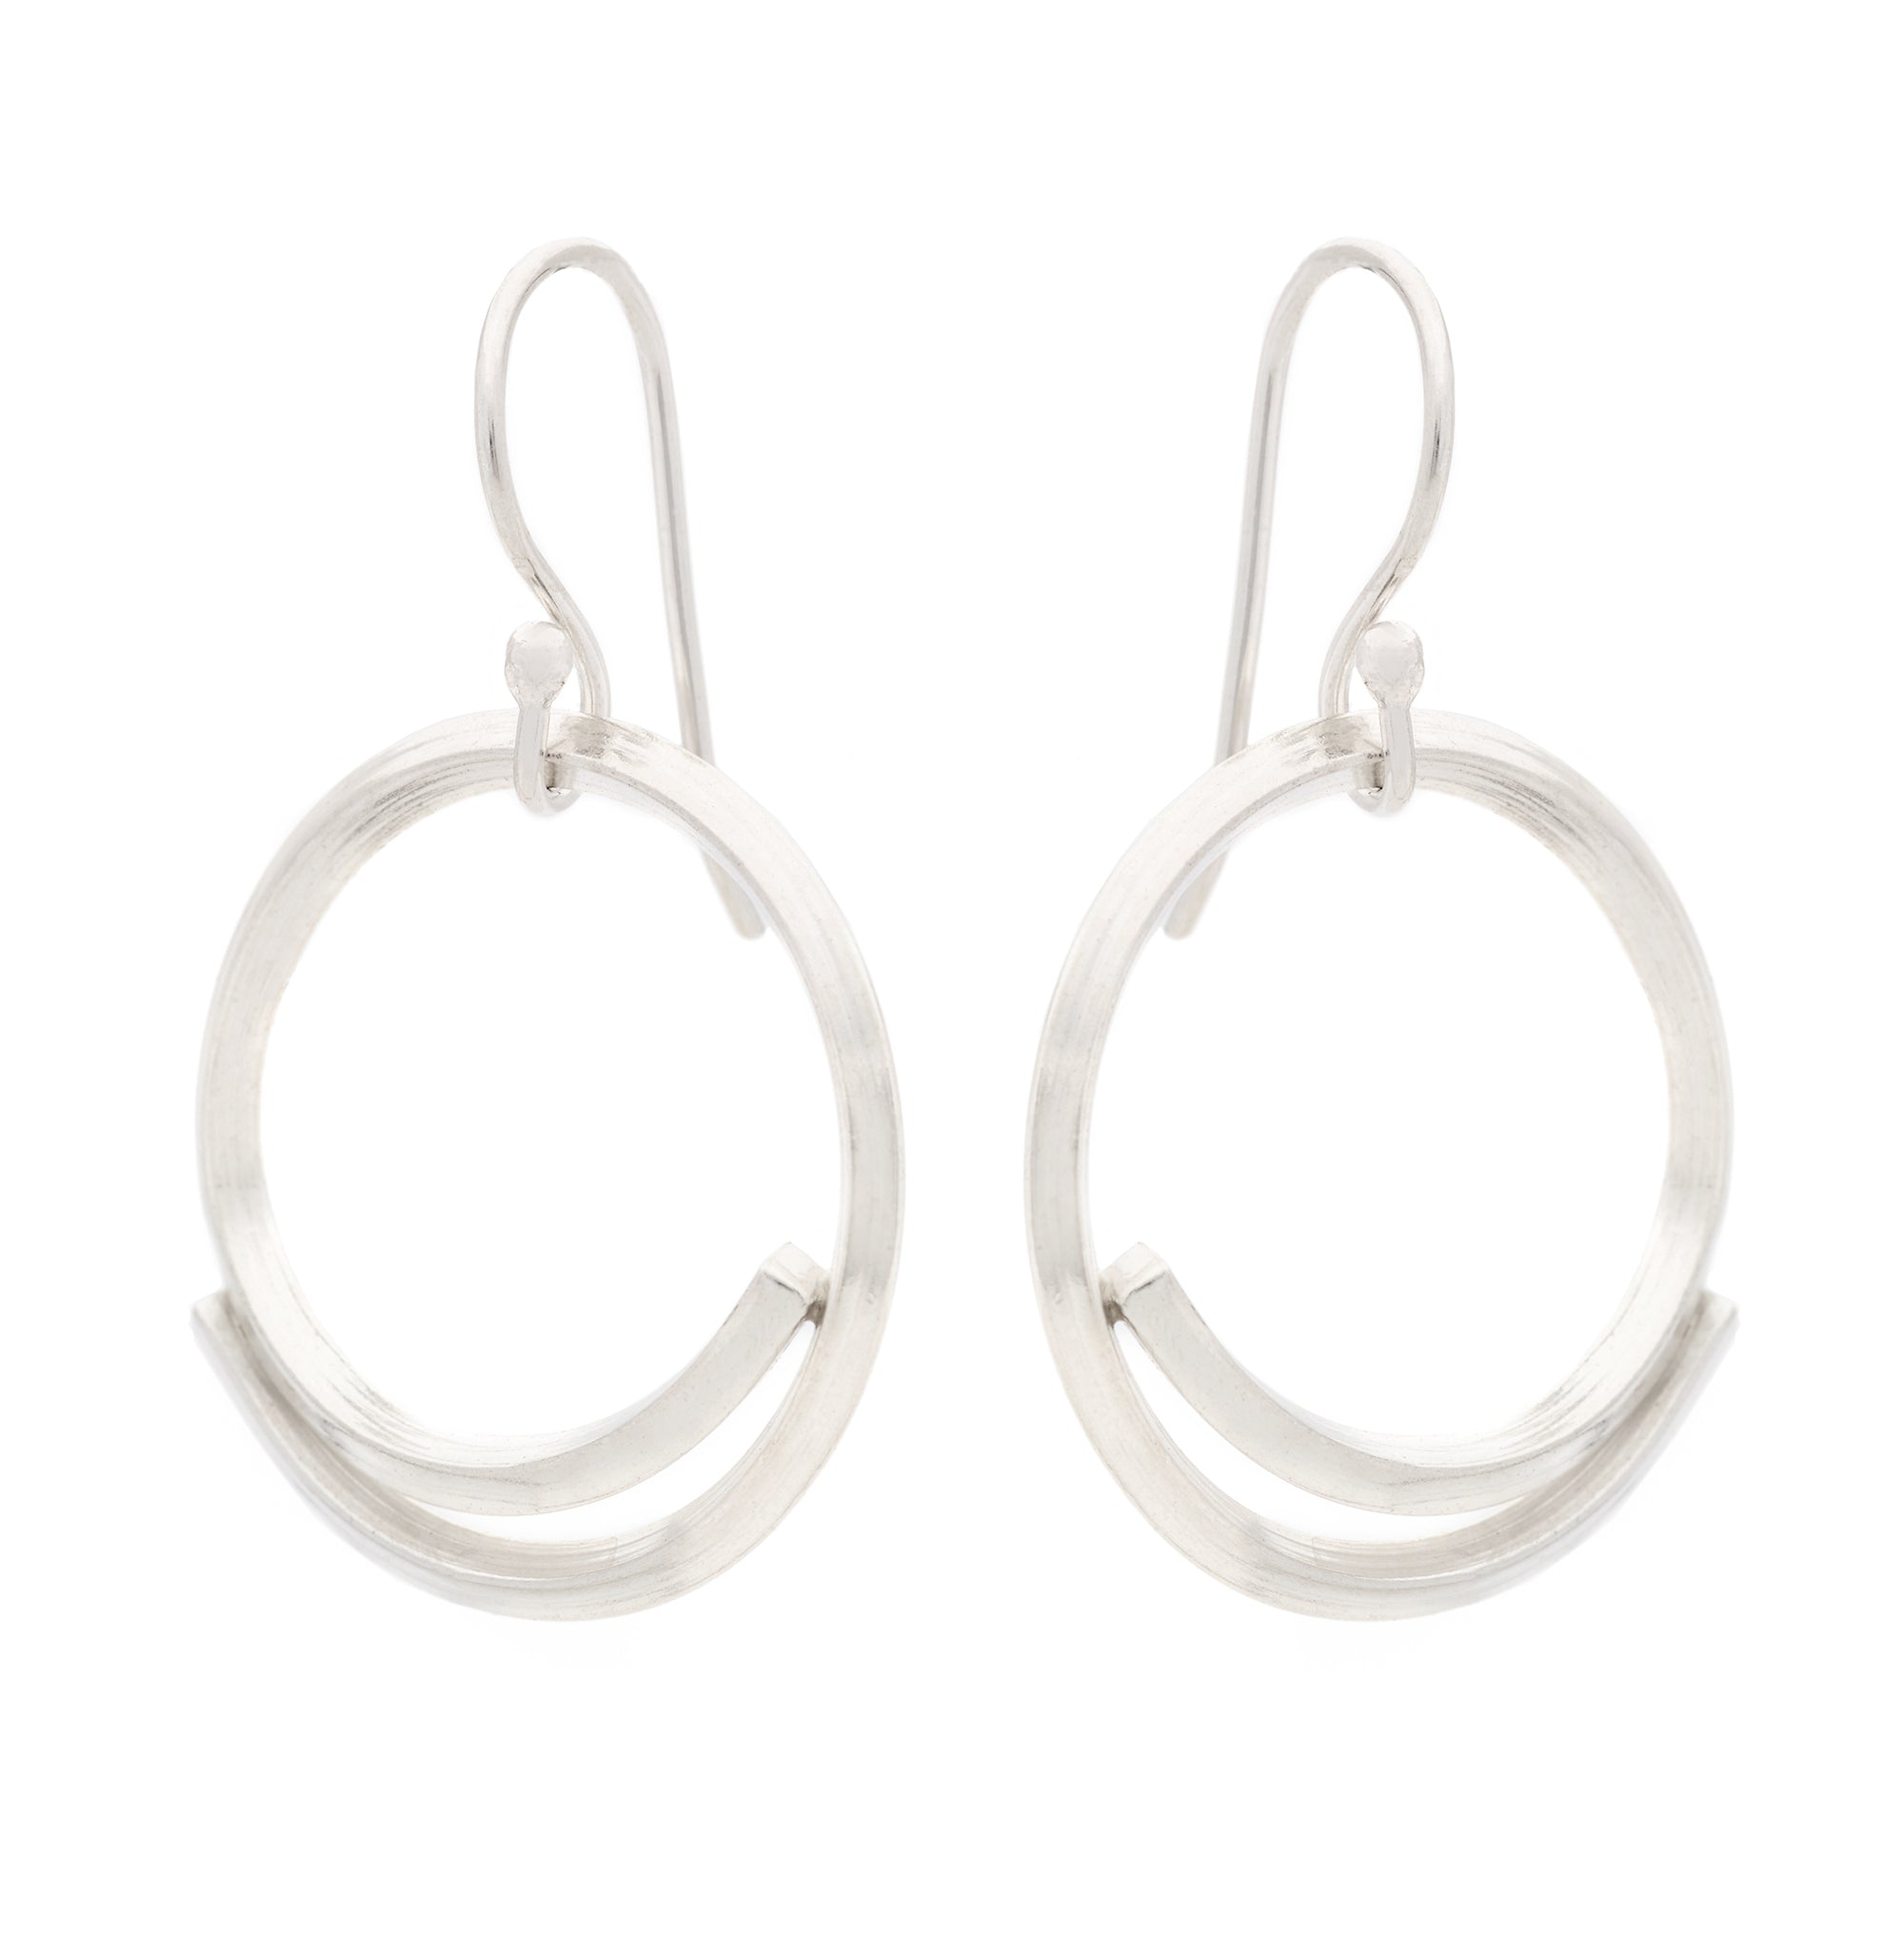 Small Square Stick Circle Earrings - Johanna Brierley Jewellery Design